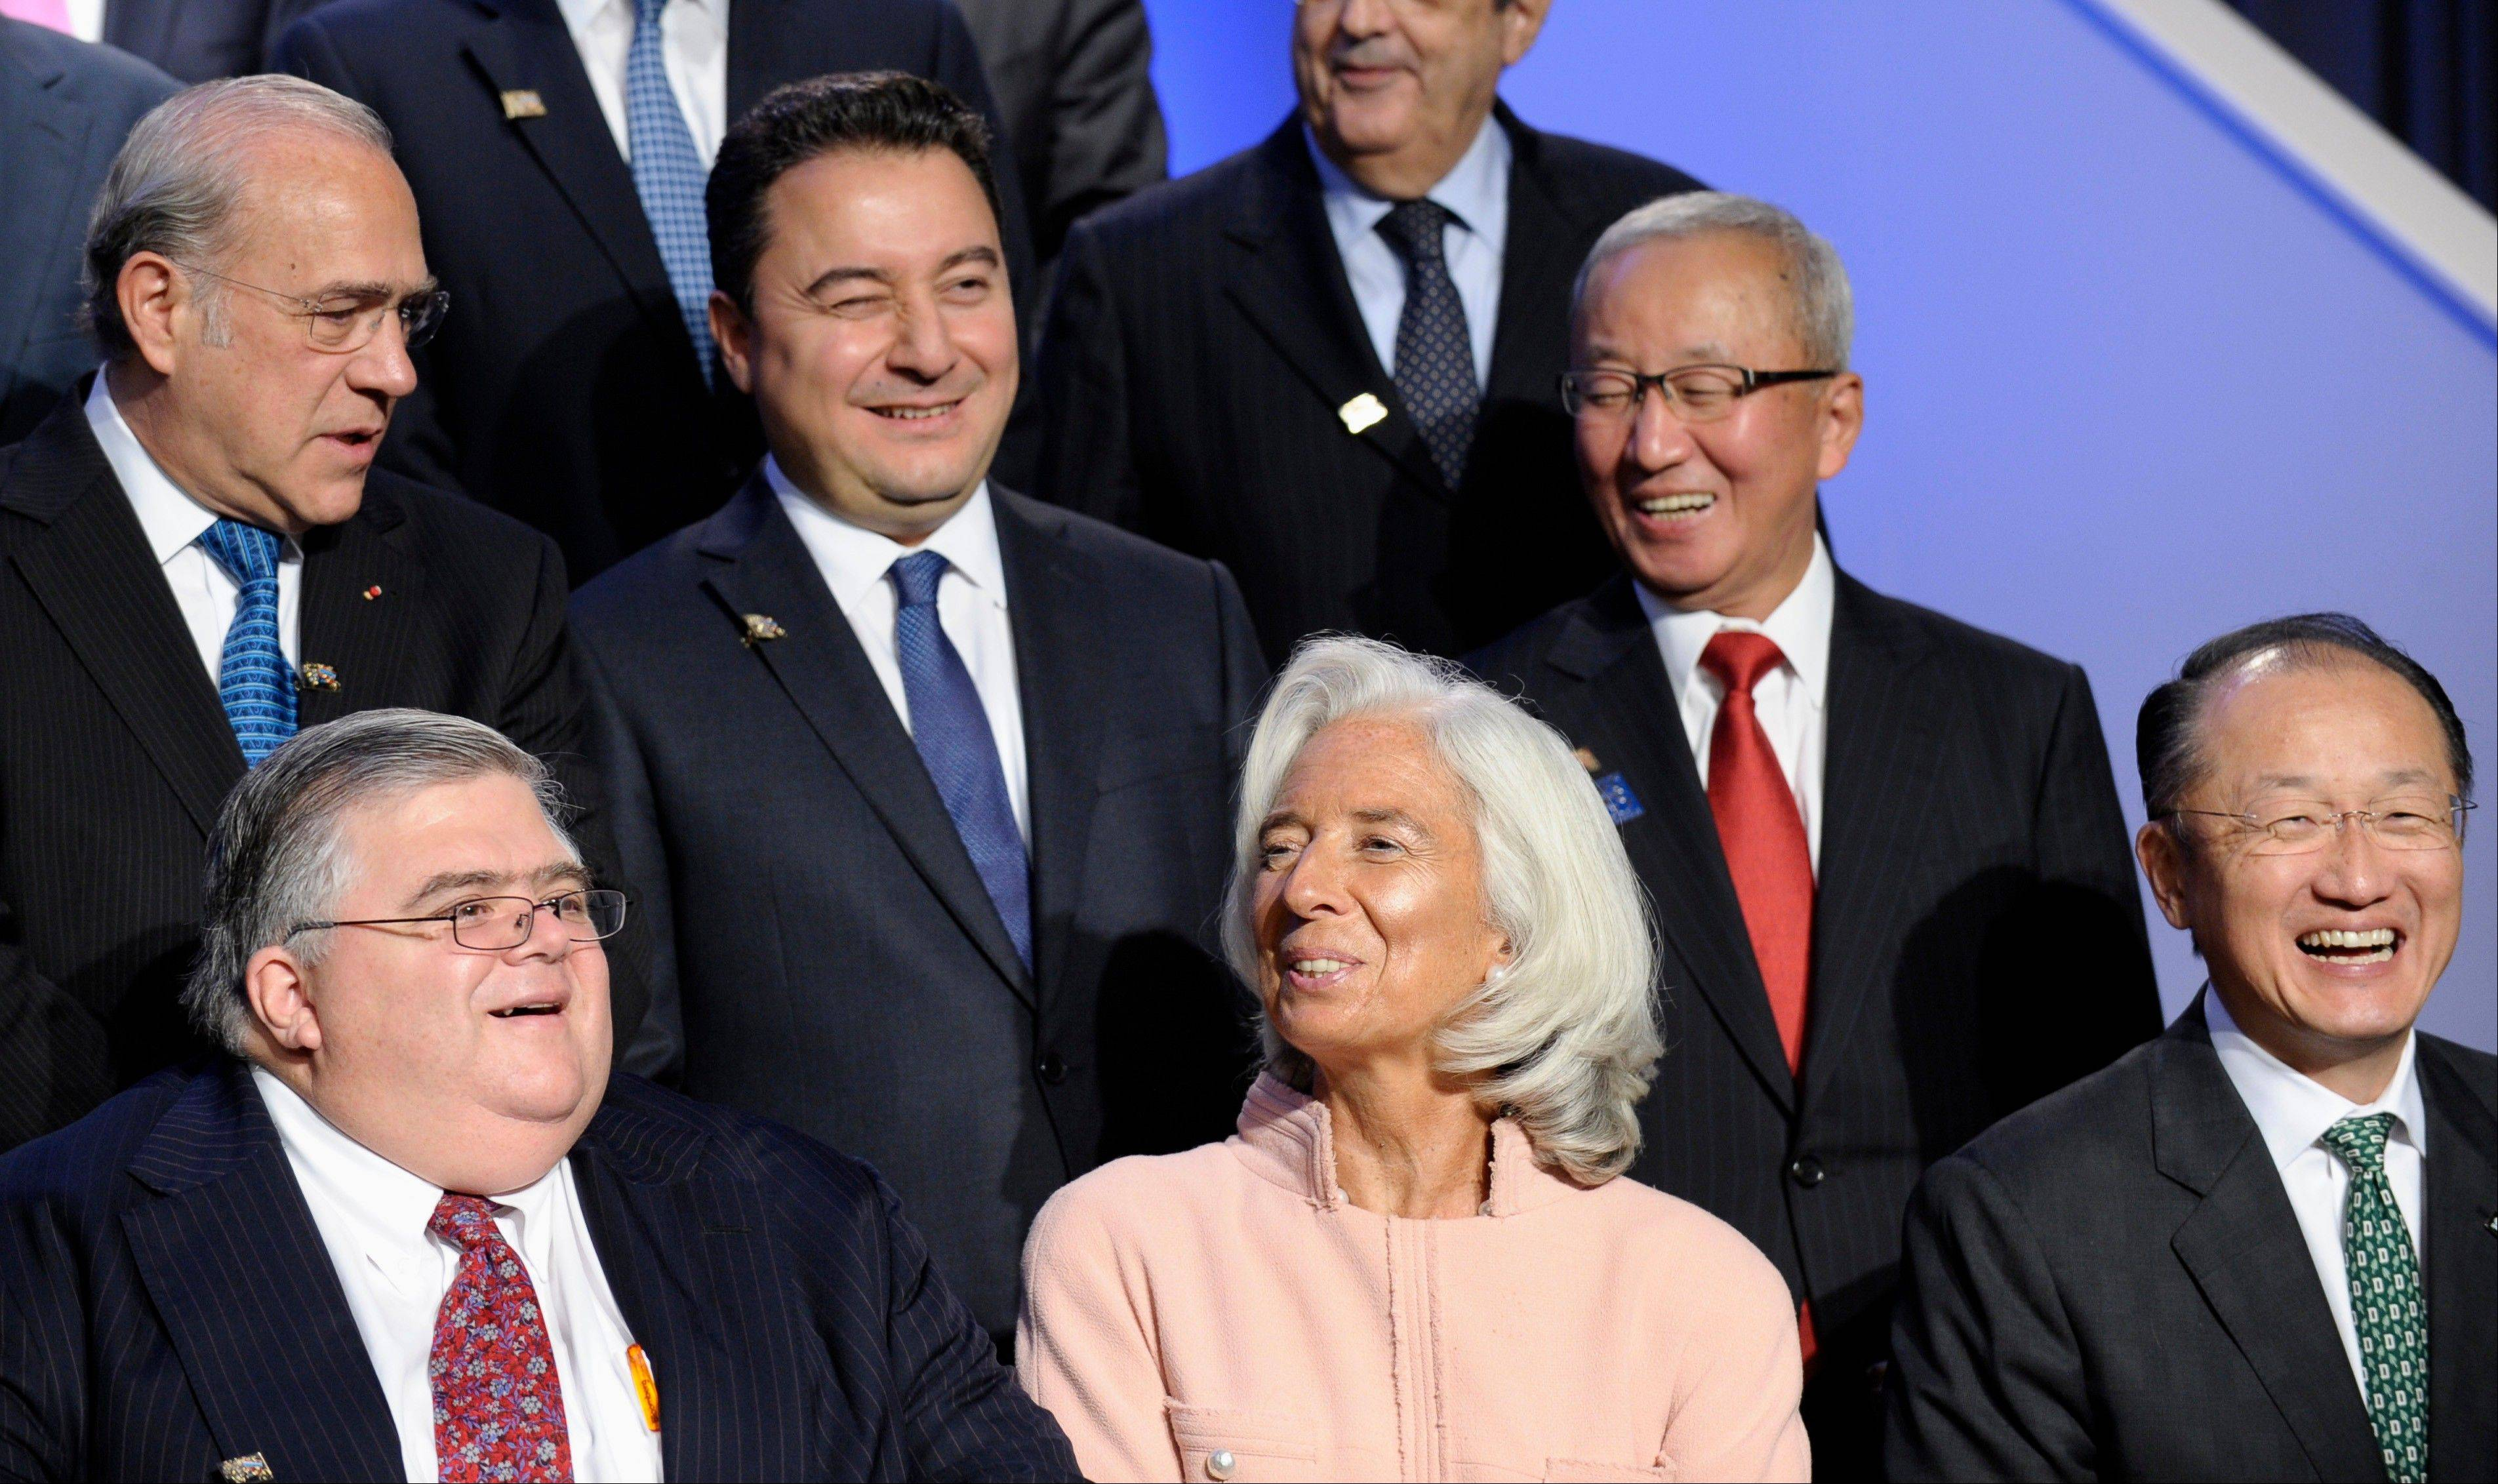 International Monetary Fund Managing Director Christine Lagarde, front row, center, flanked by Mexican central bank Governor Agustin Carstens, left, and World Bank President Jim Yong Kim, front row, right, poses Friday with the Group of 20.